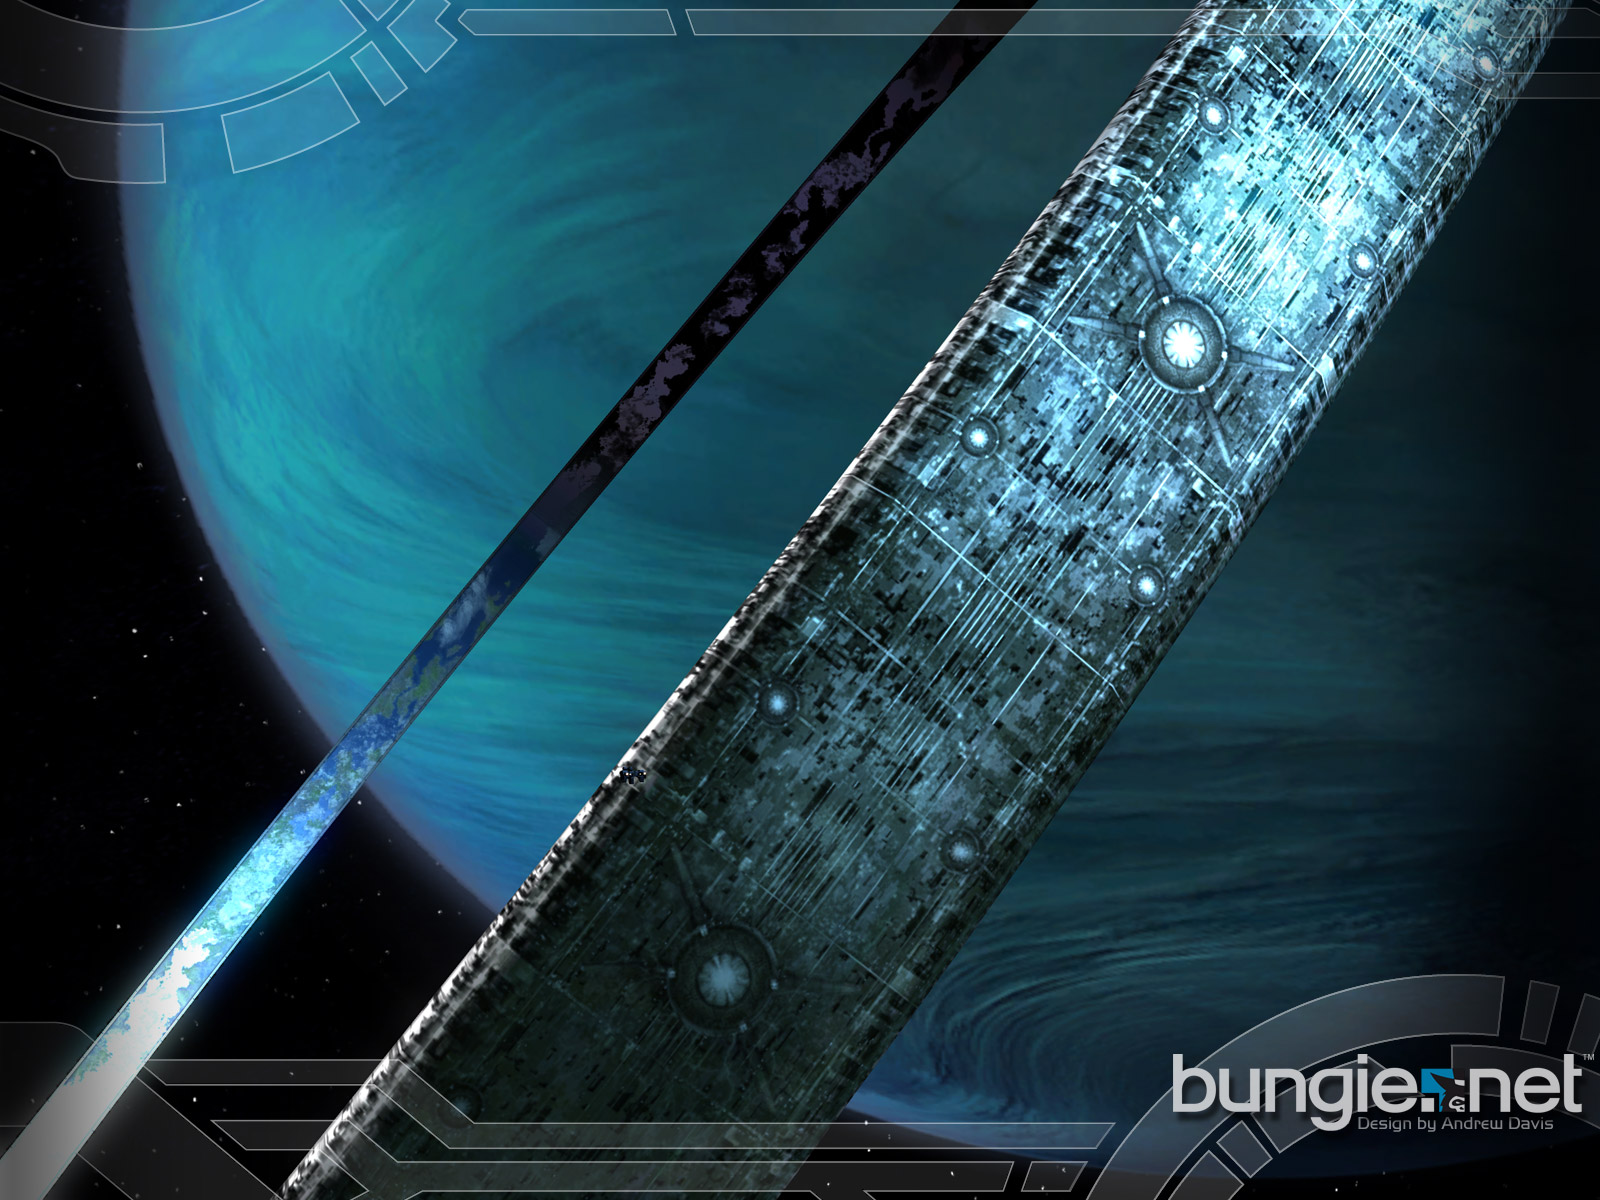 2506346 Halo 2 Wallpaper The Ring1